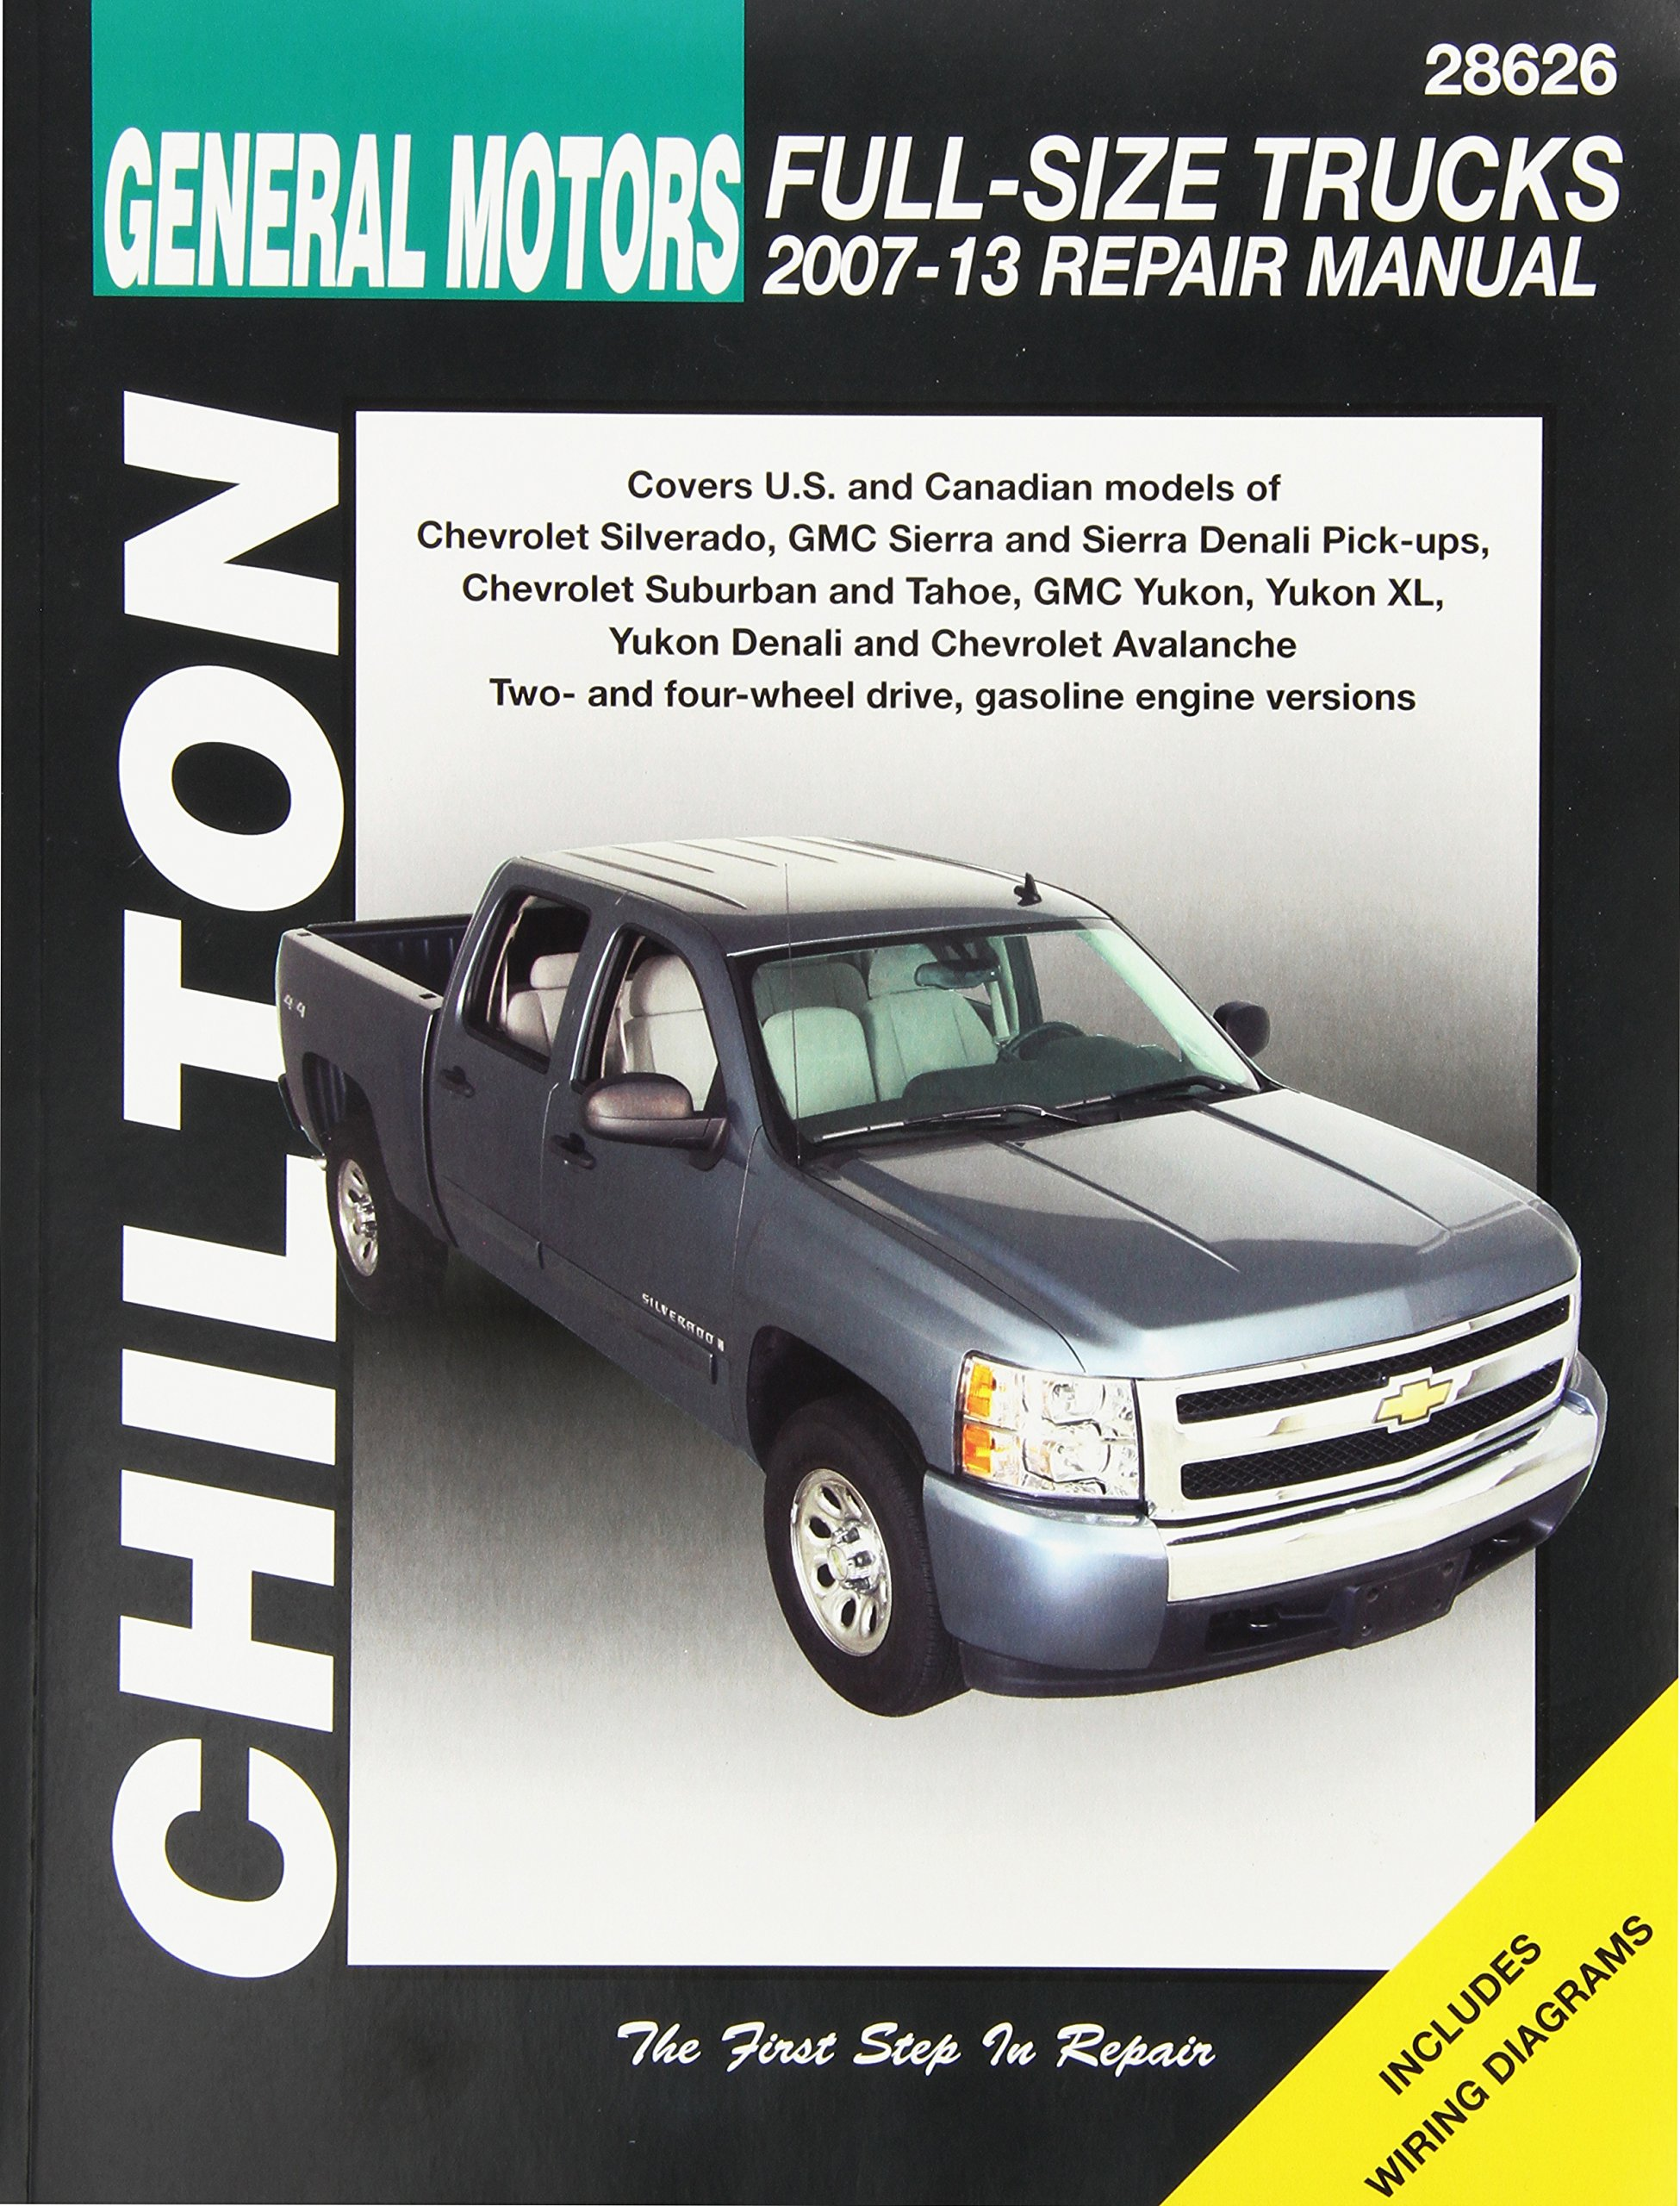 amazon com gm full size trucks chilton repair manual 2007 2012 rh amazon com 2010 chevy silverado repair manual free download 2010 silverado repair manual pdf